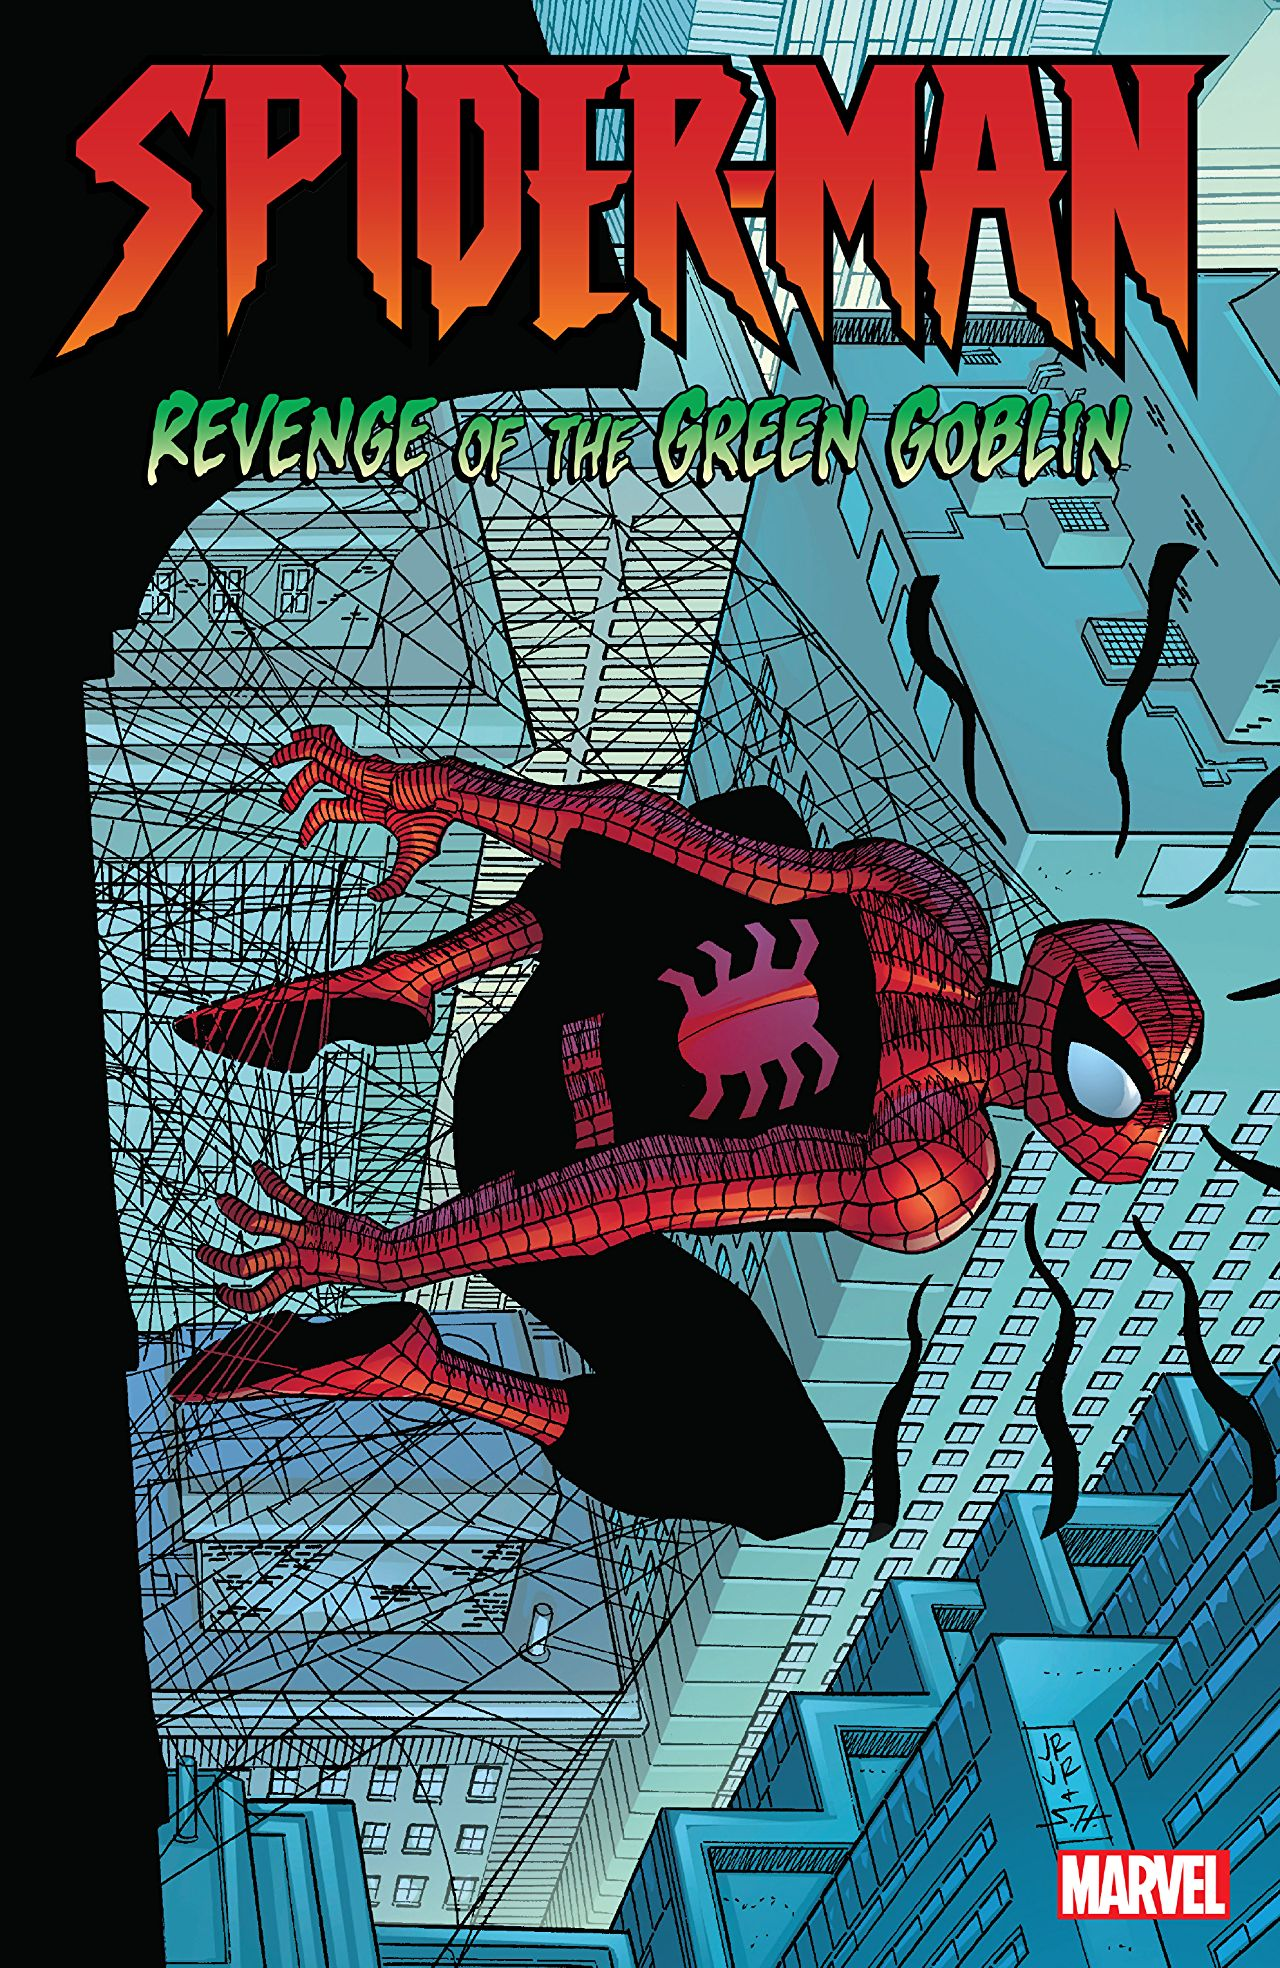 'Spider-Man: Revenge of the Green Goblin' review: Before Straczynski, there was... a lot